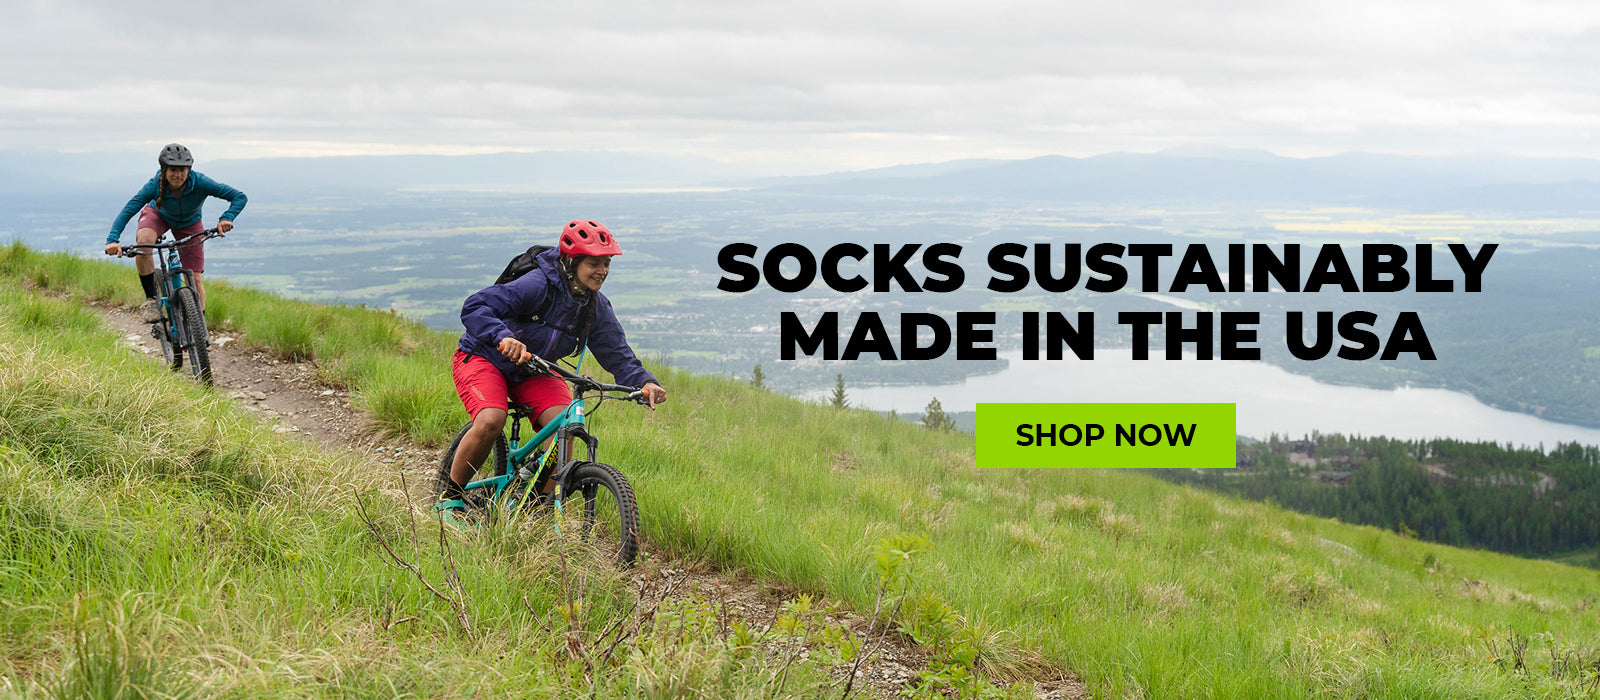 Socks Sustainably Made In The USA, Shop Now